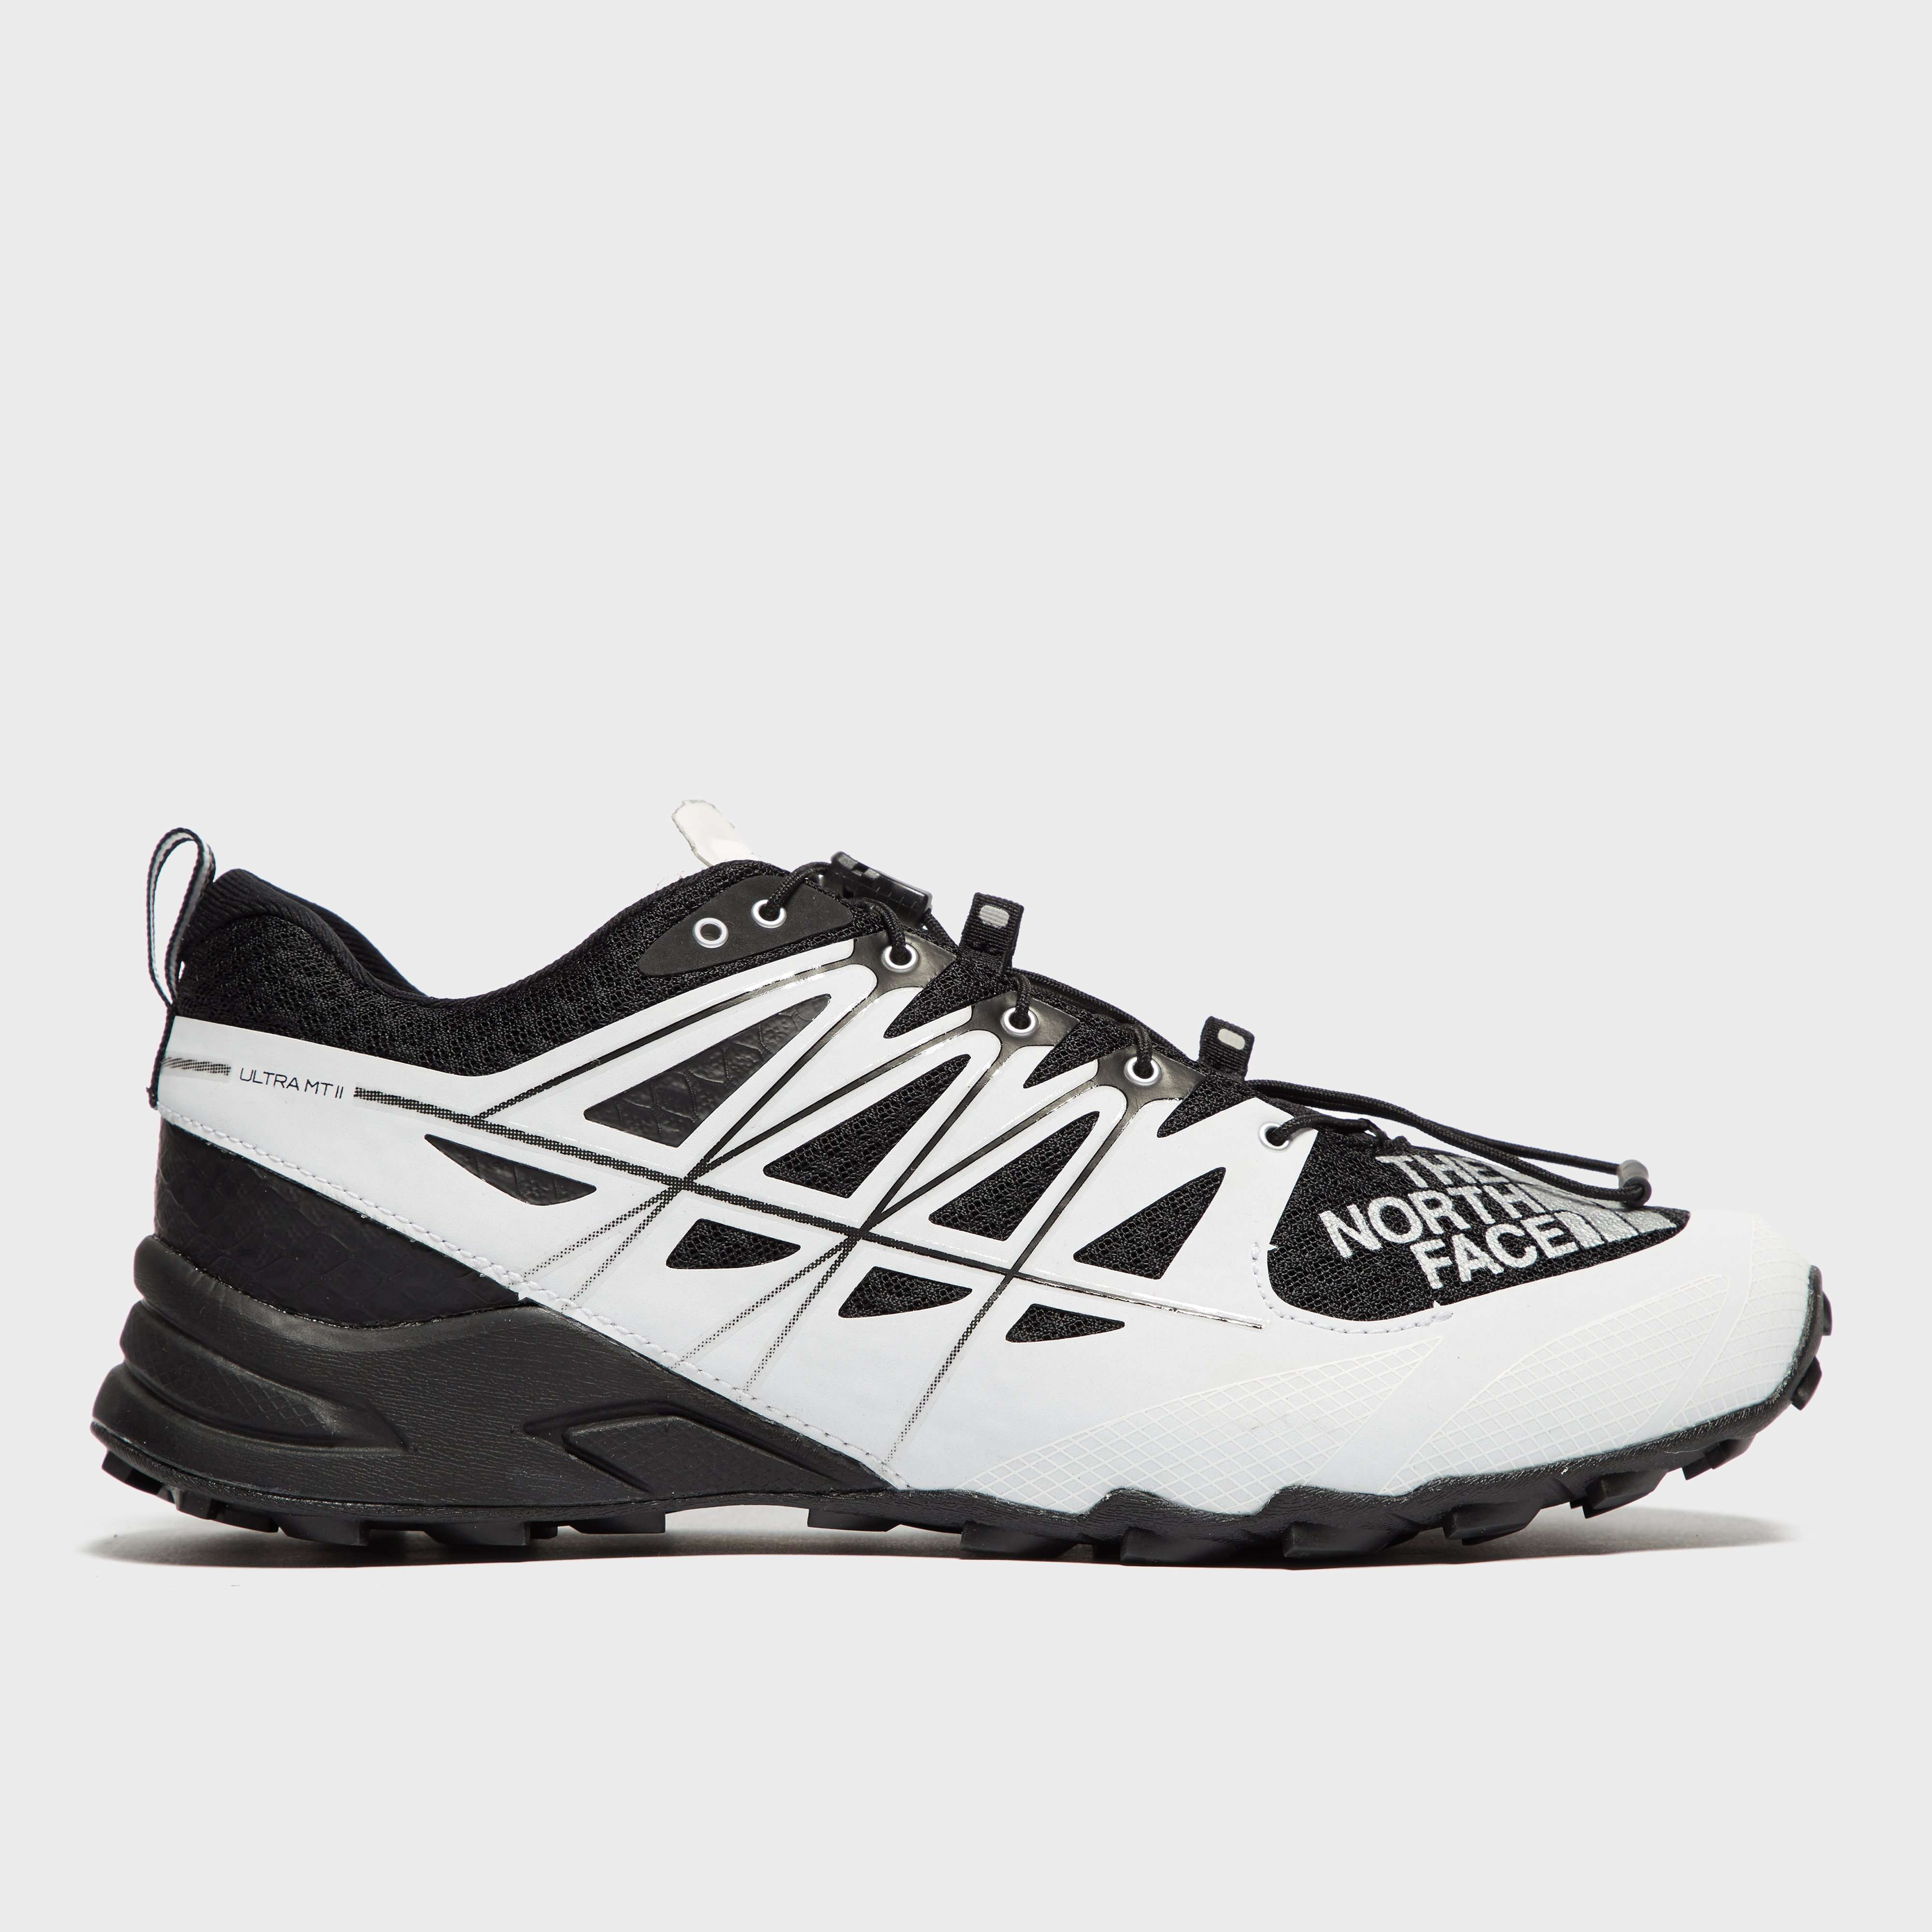 THE NORTH FACE Men's Ultra MT II Trail Runner